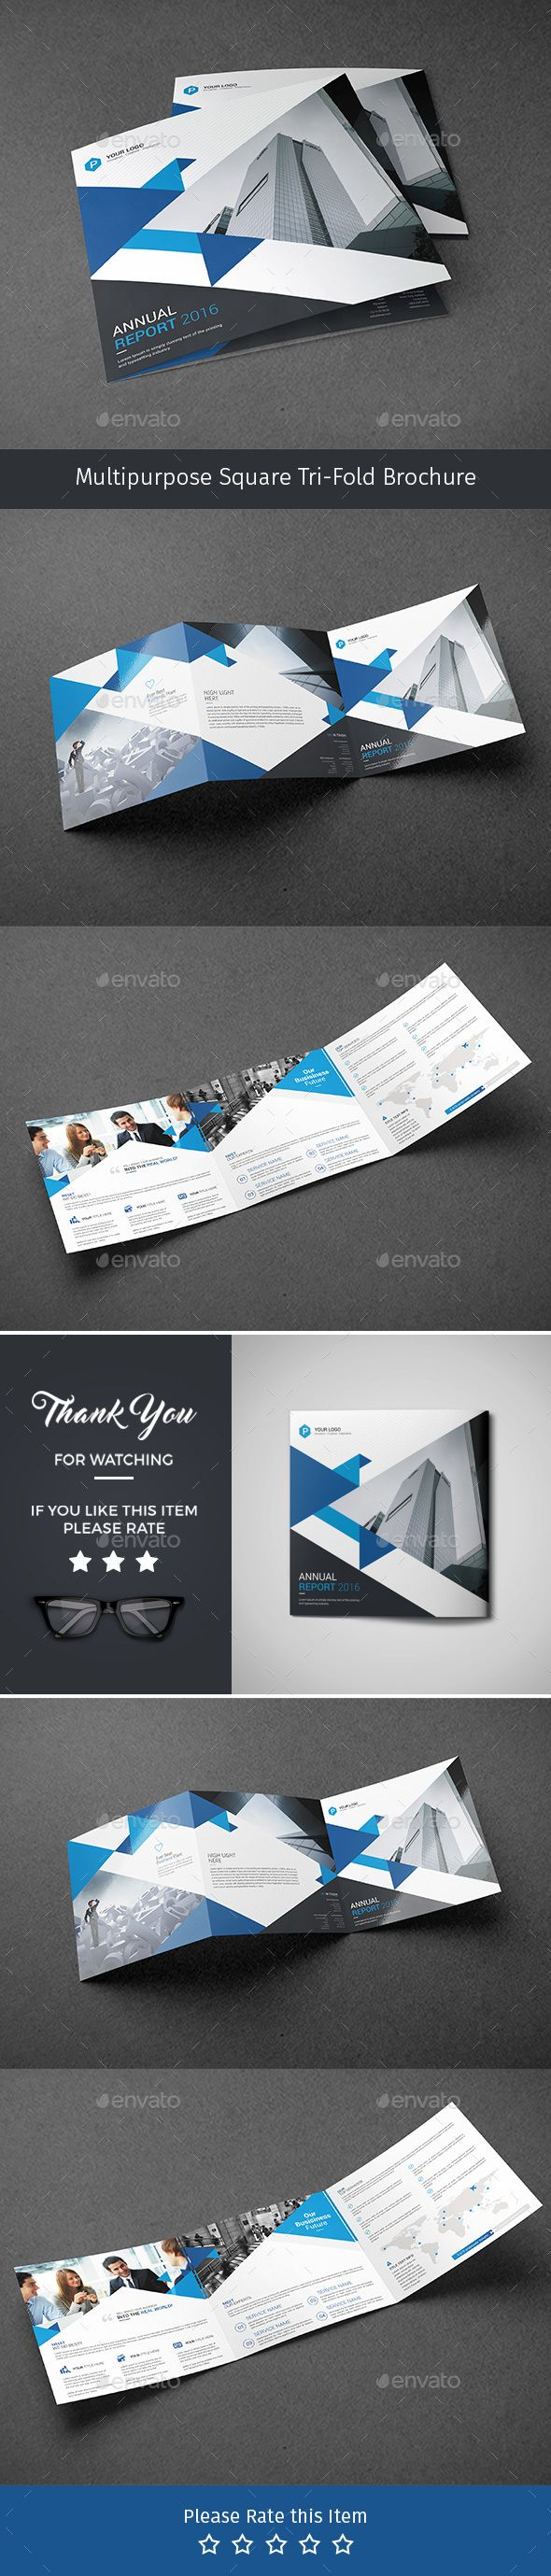 Corporate Tri-fold Square Brochure Template PSD. Download here: http://graphicriver.net/item/corporate-trifold-square-brochure-07/16442556?ref=ksioks